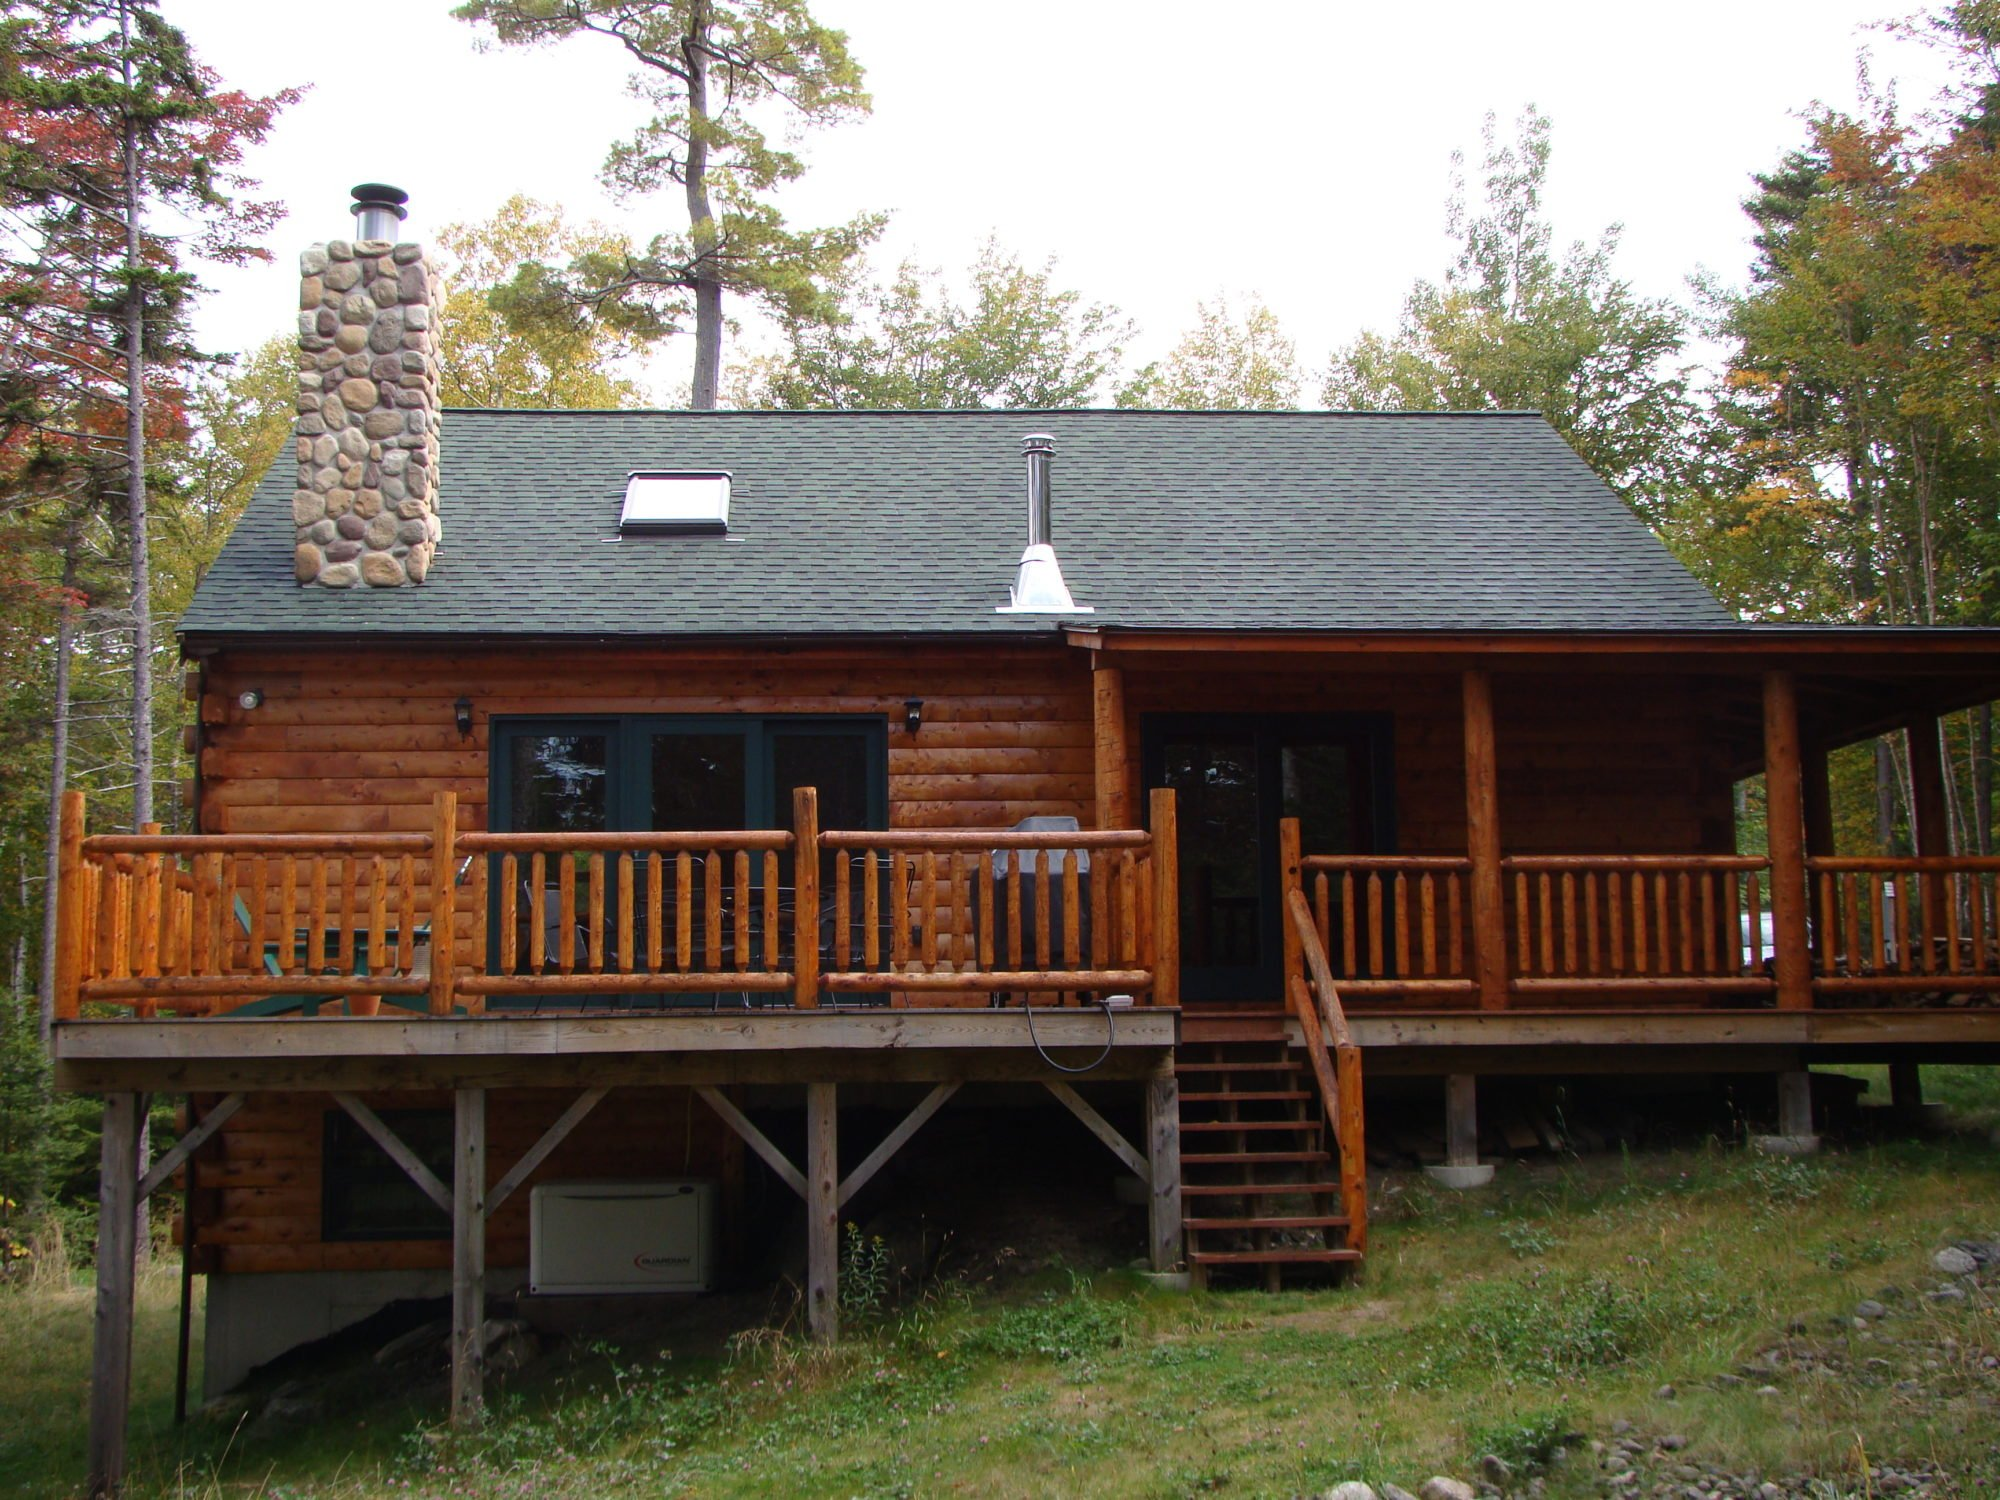 Moosehead hills cabins rustic luxury log cabin rentals for Cabin rentals in maine with hot tub